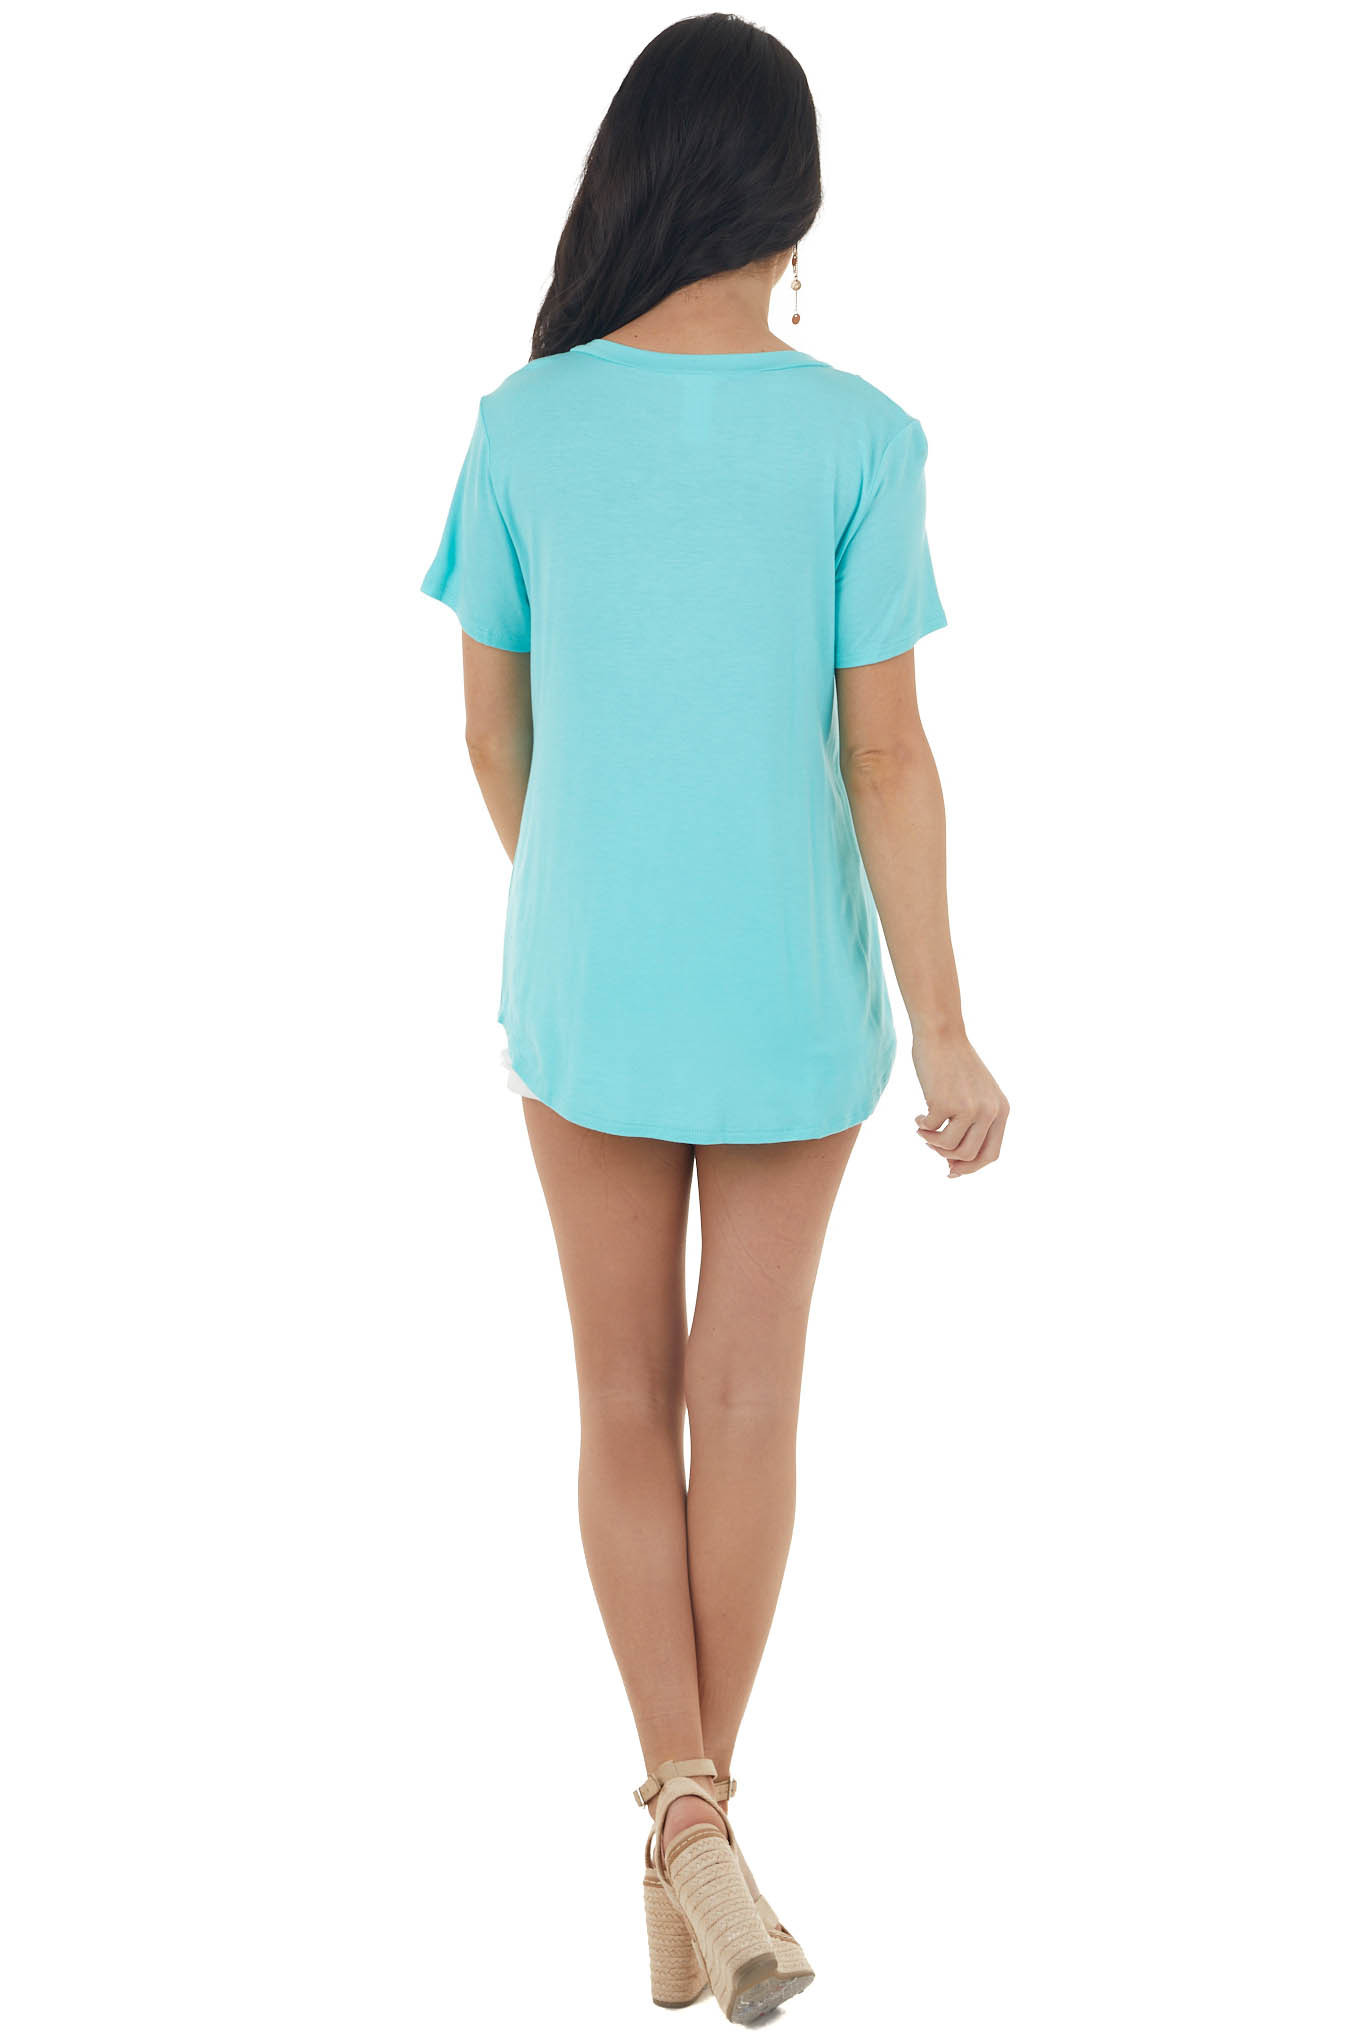 Aqua Short Sleeve Top with Sequin and Criss Cross Detail